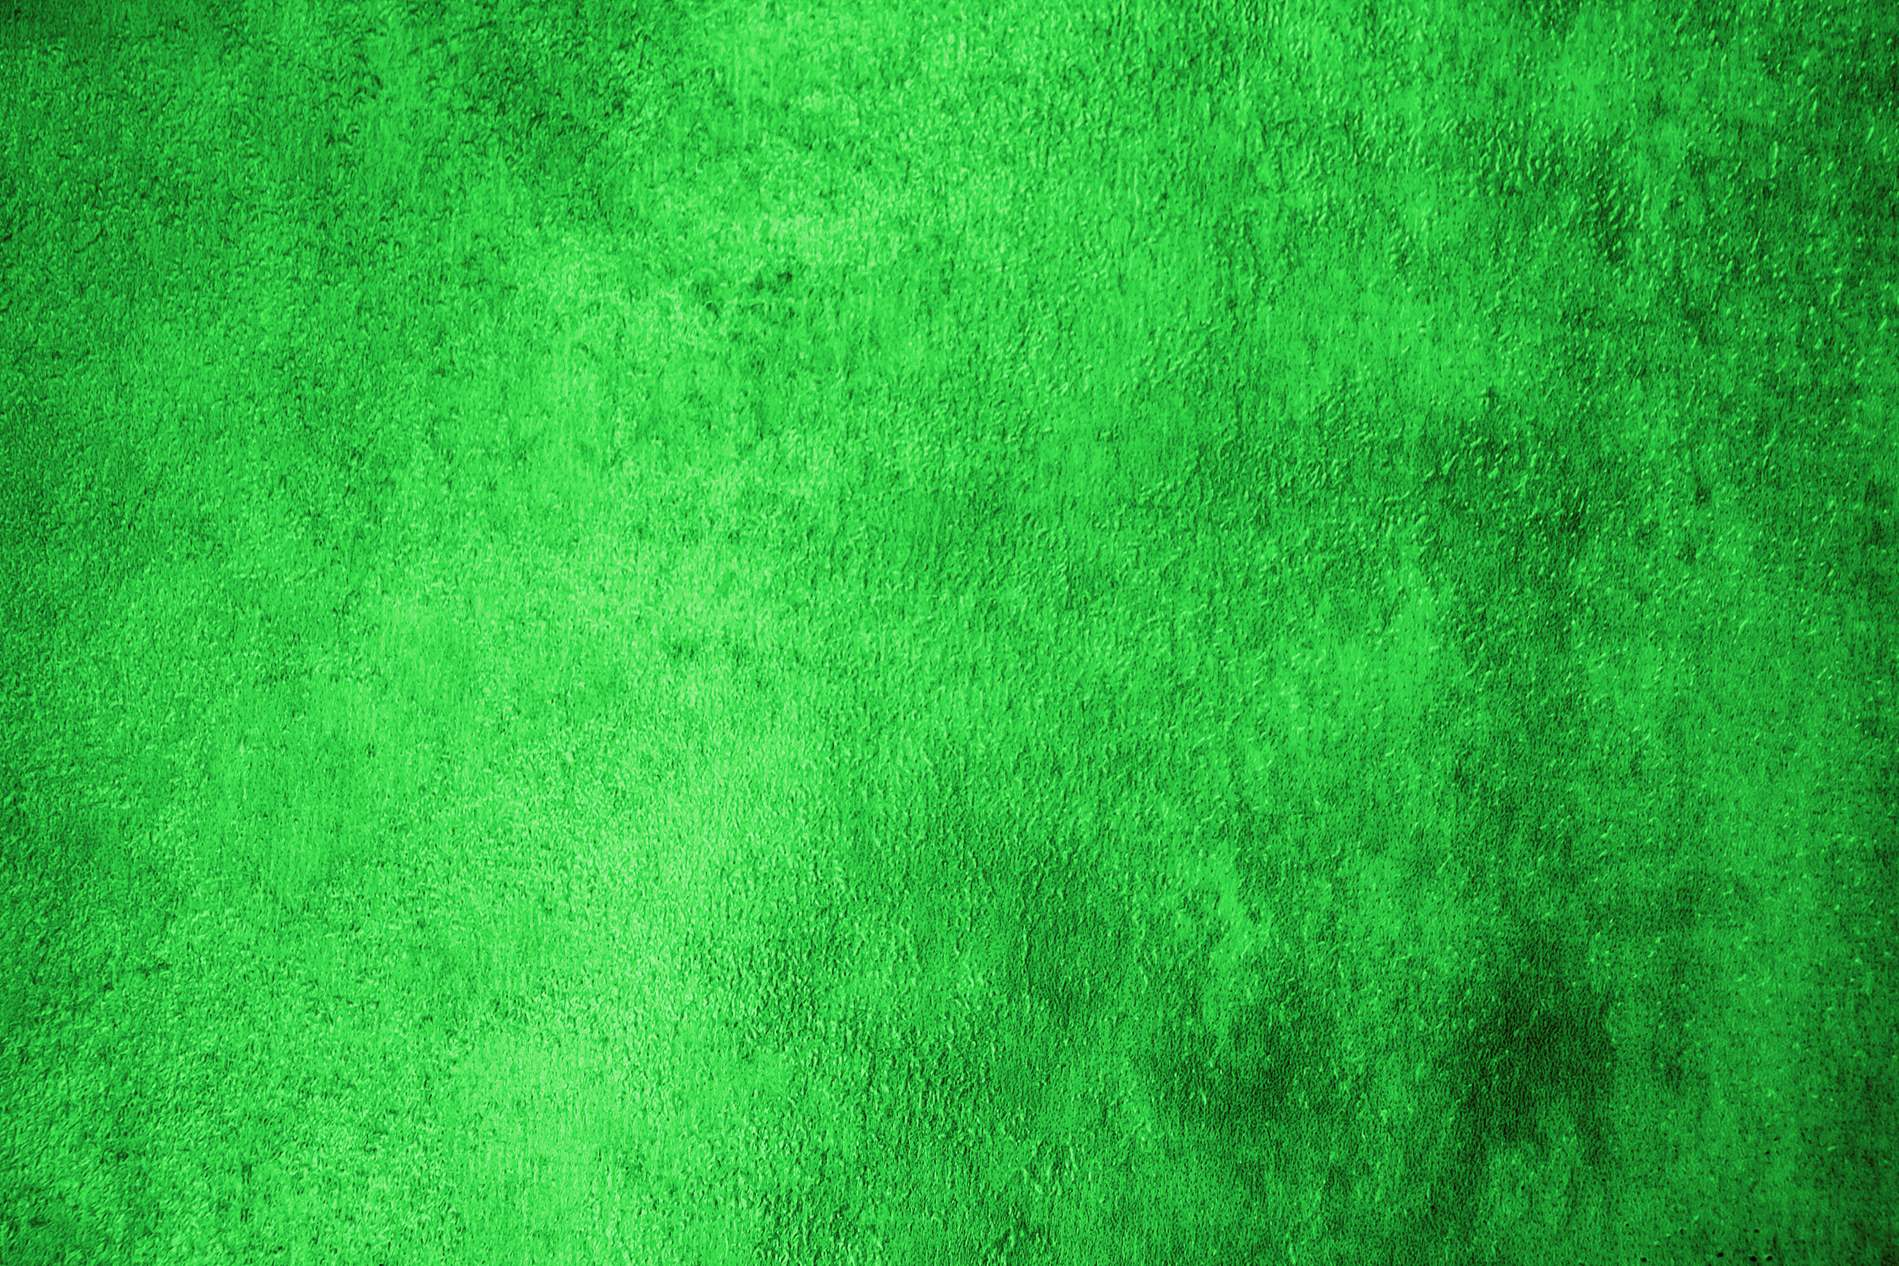 Green Grunge Background Texture - PhotoHDX